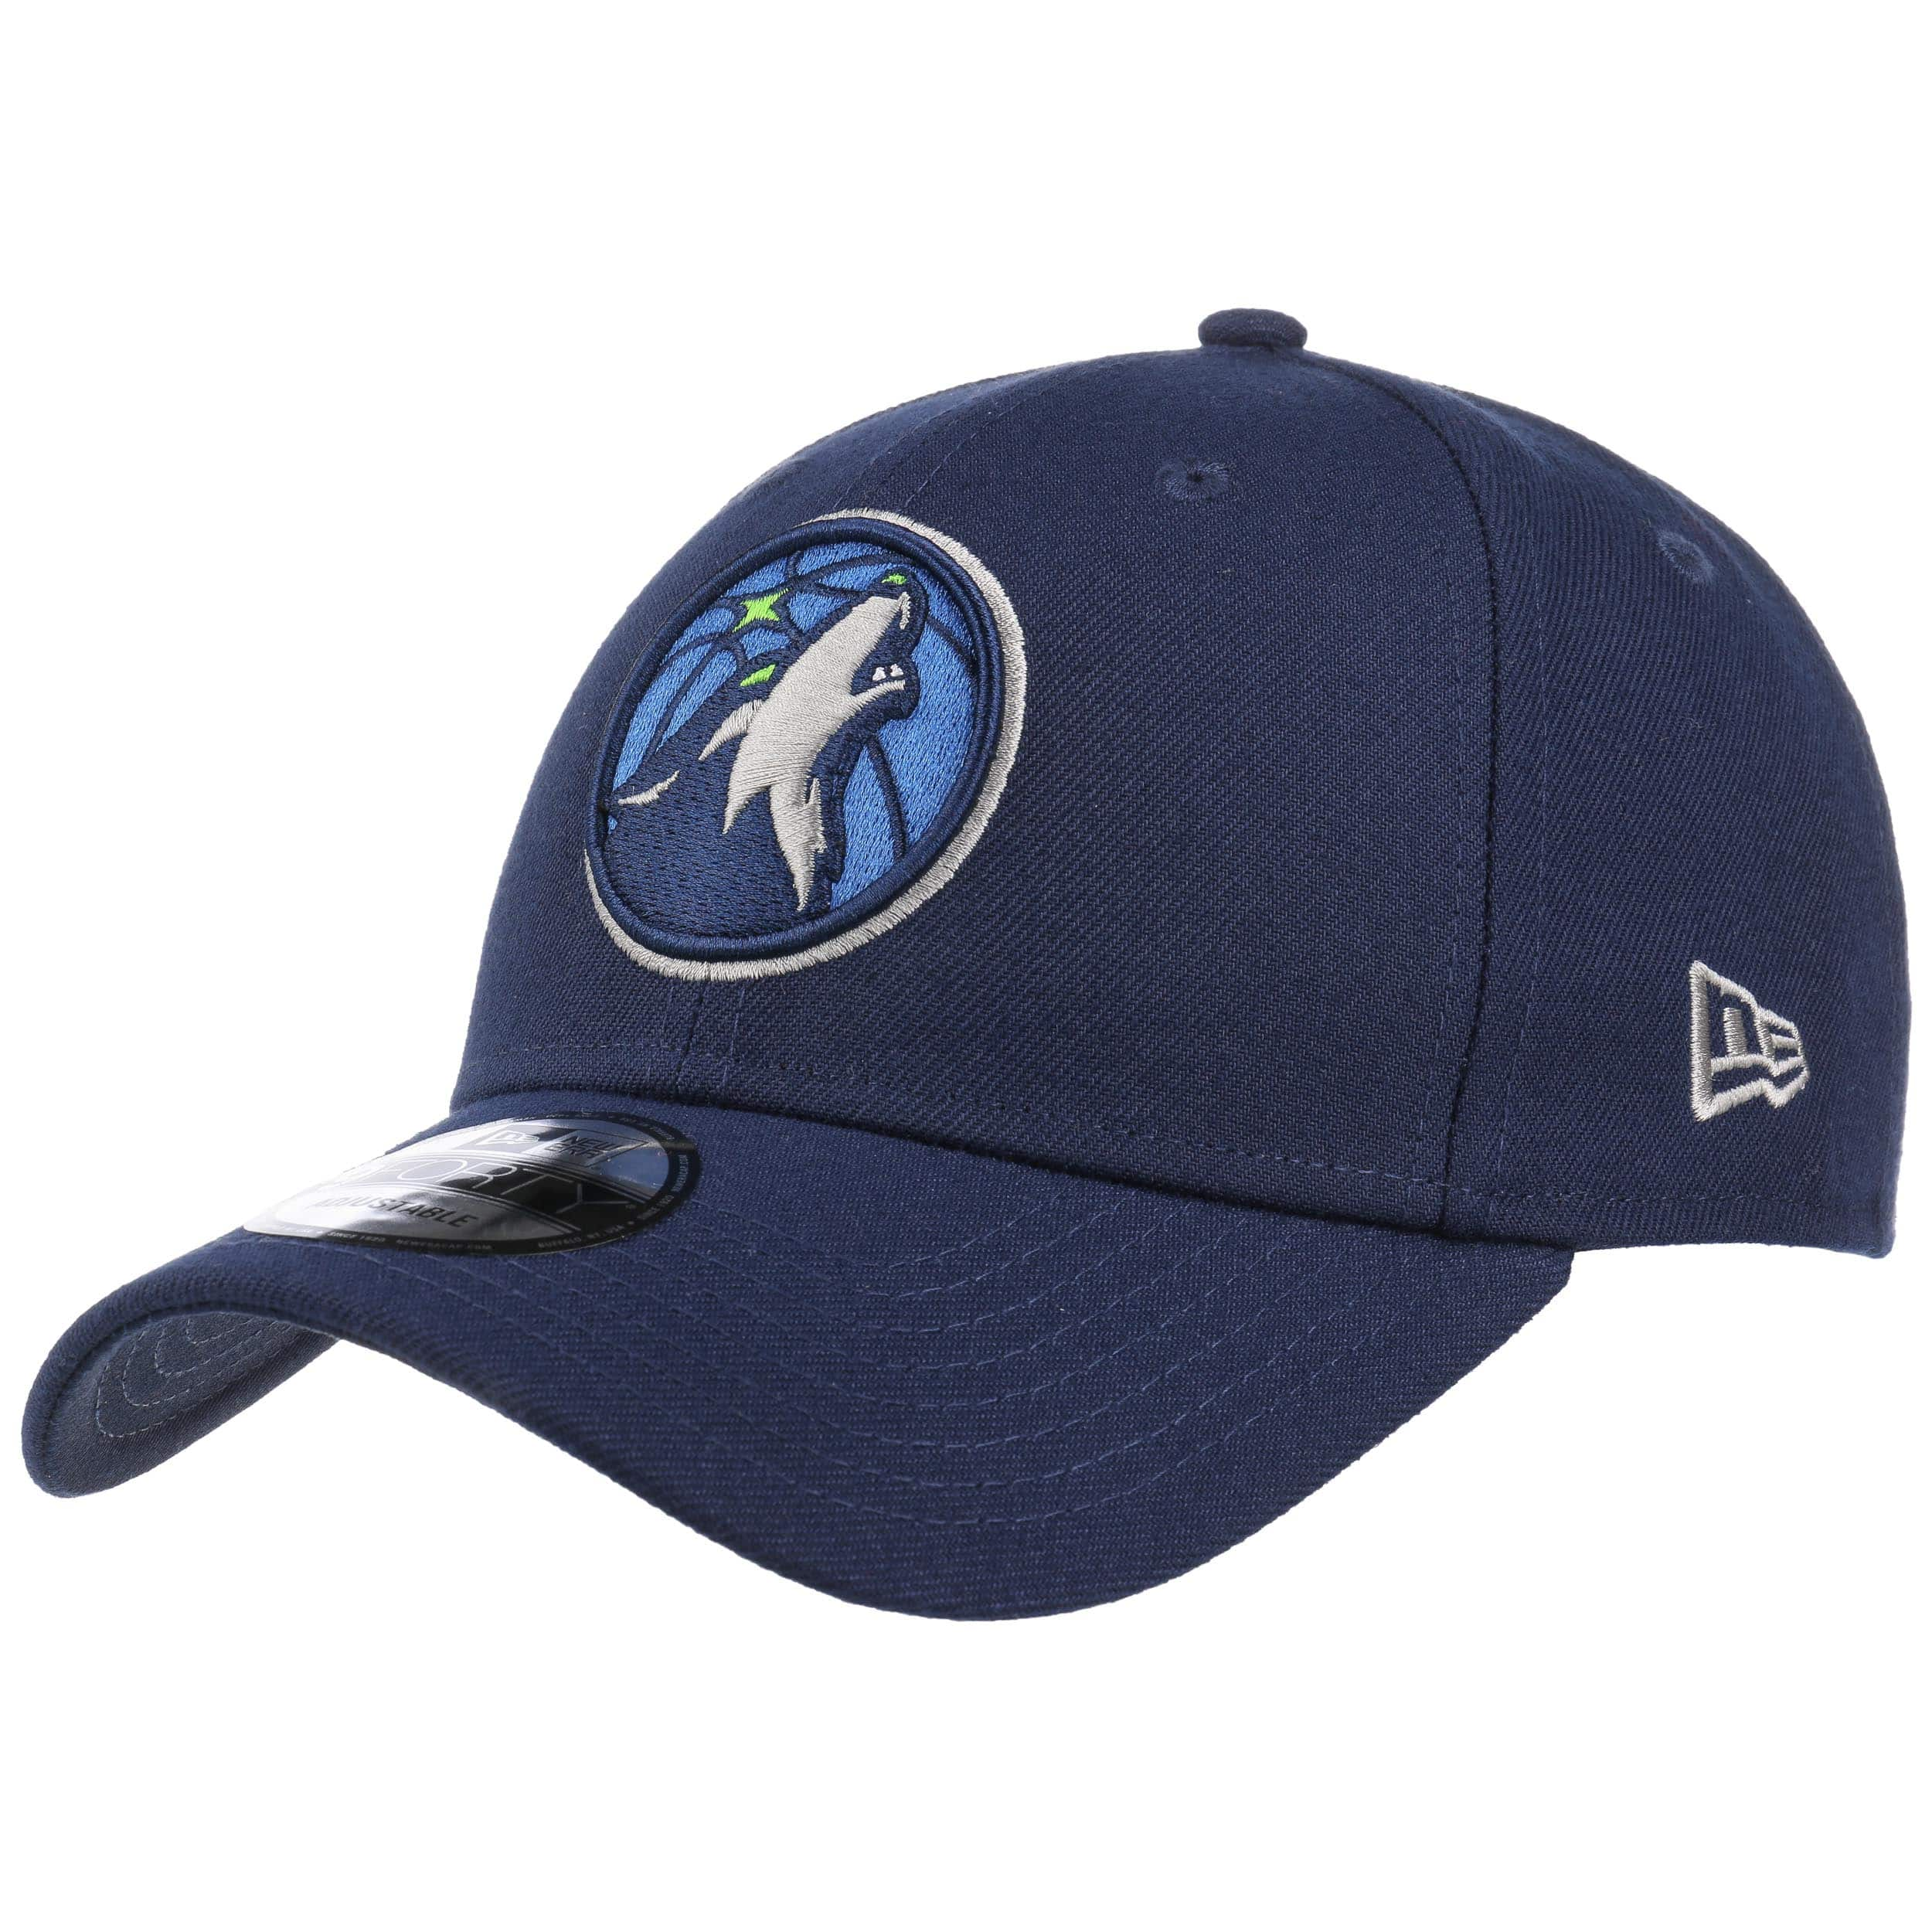 ... 9Forty The League Timberwolves Cap by New Era - navy 6 8a41a683851